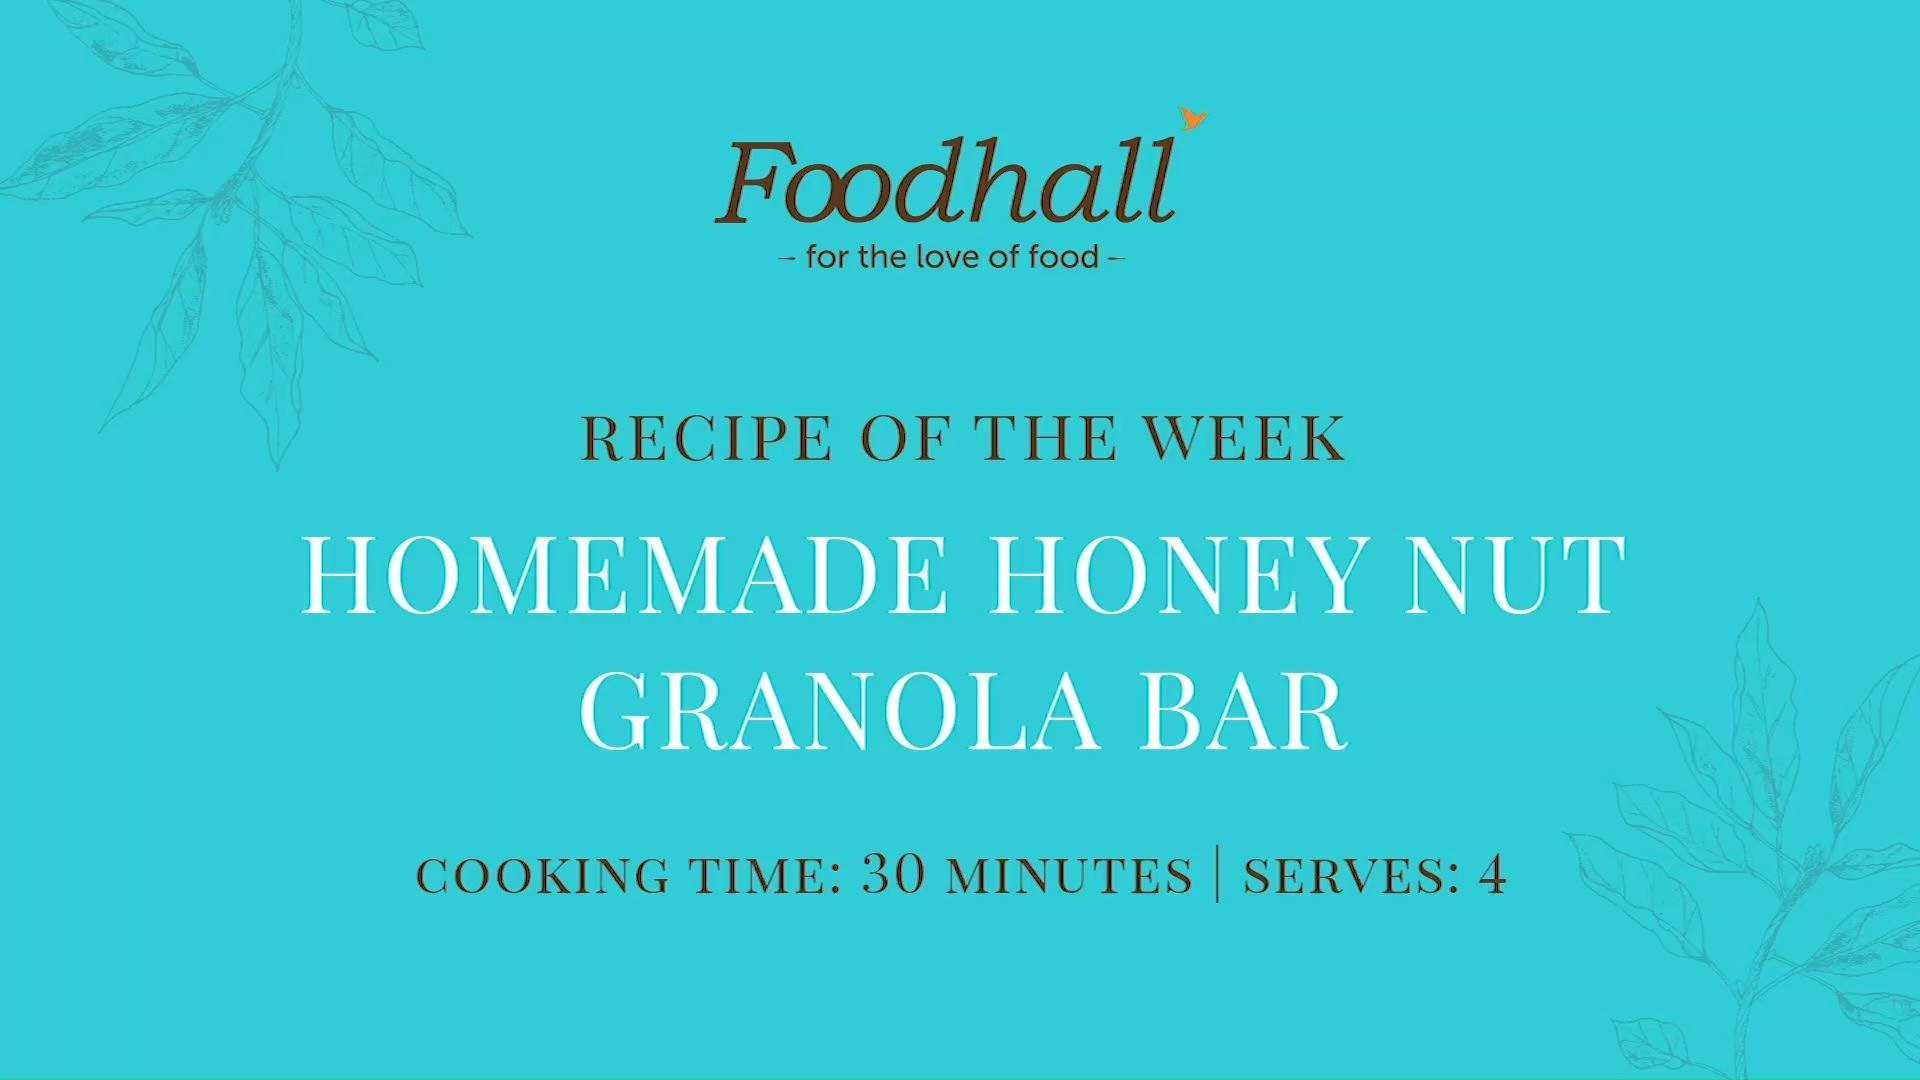 #RecipeoftheWeek: Homemade Honey Nut Granola Bar.  Perfect for healthy snacking on-the-go, these granola bars are loaded with crunchy flavor and wholesome goodness. We recommend always keeping a couple on hand for the next time your sugar cravings strike!  #FoodhallIndia #ForTheLoveofFood GranolaBar #HealthyRecipe #RecipeShare #HoneyNutGranolaBar #GranolaLovers #HealthyEating #HealthySnacking  Nourish Organics